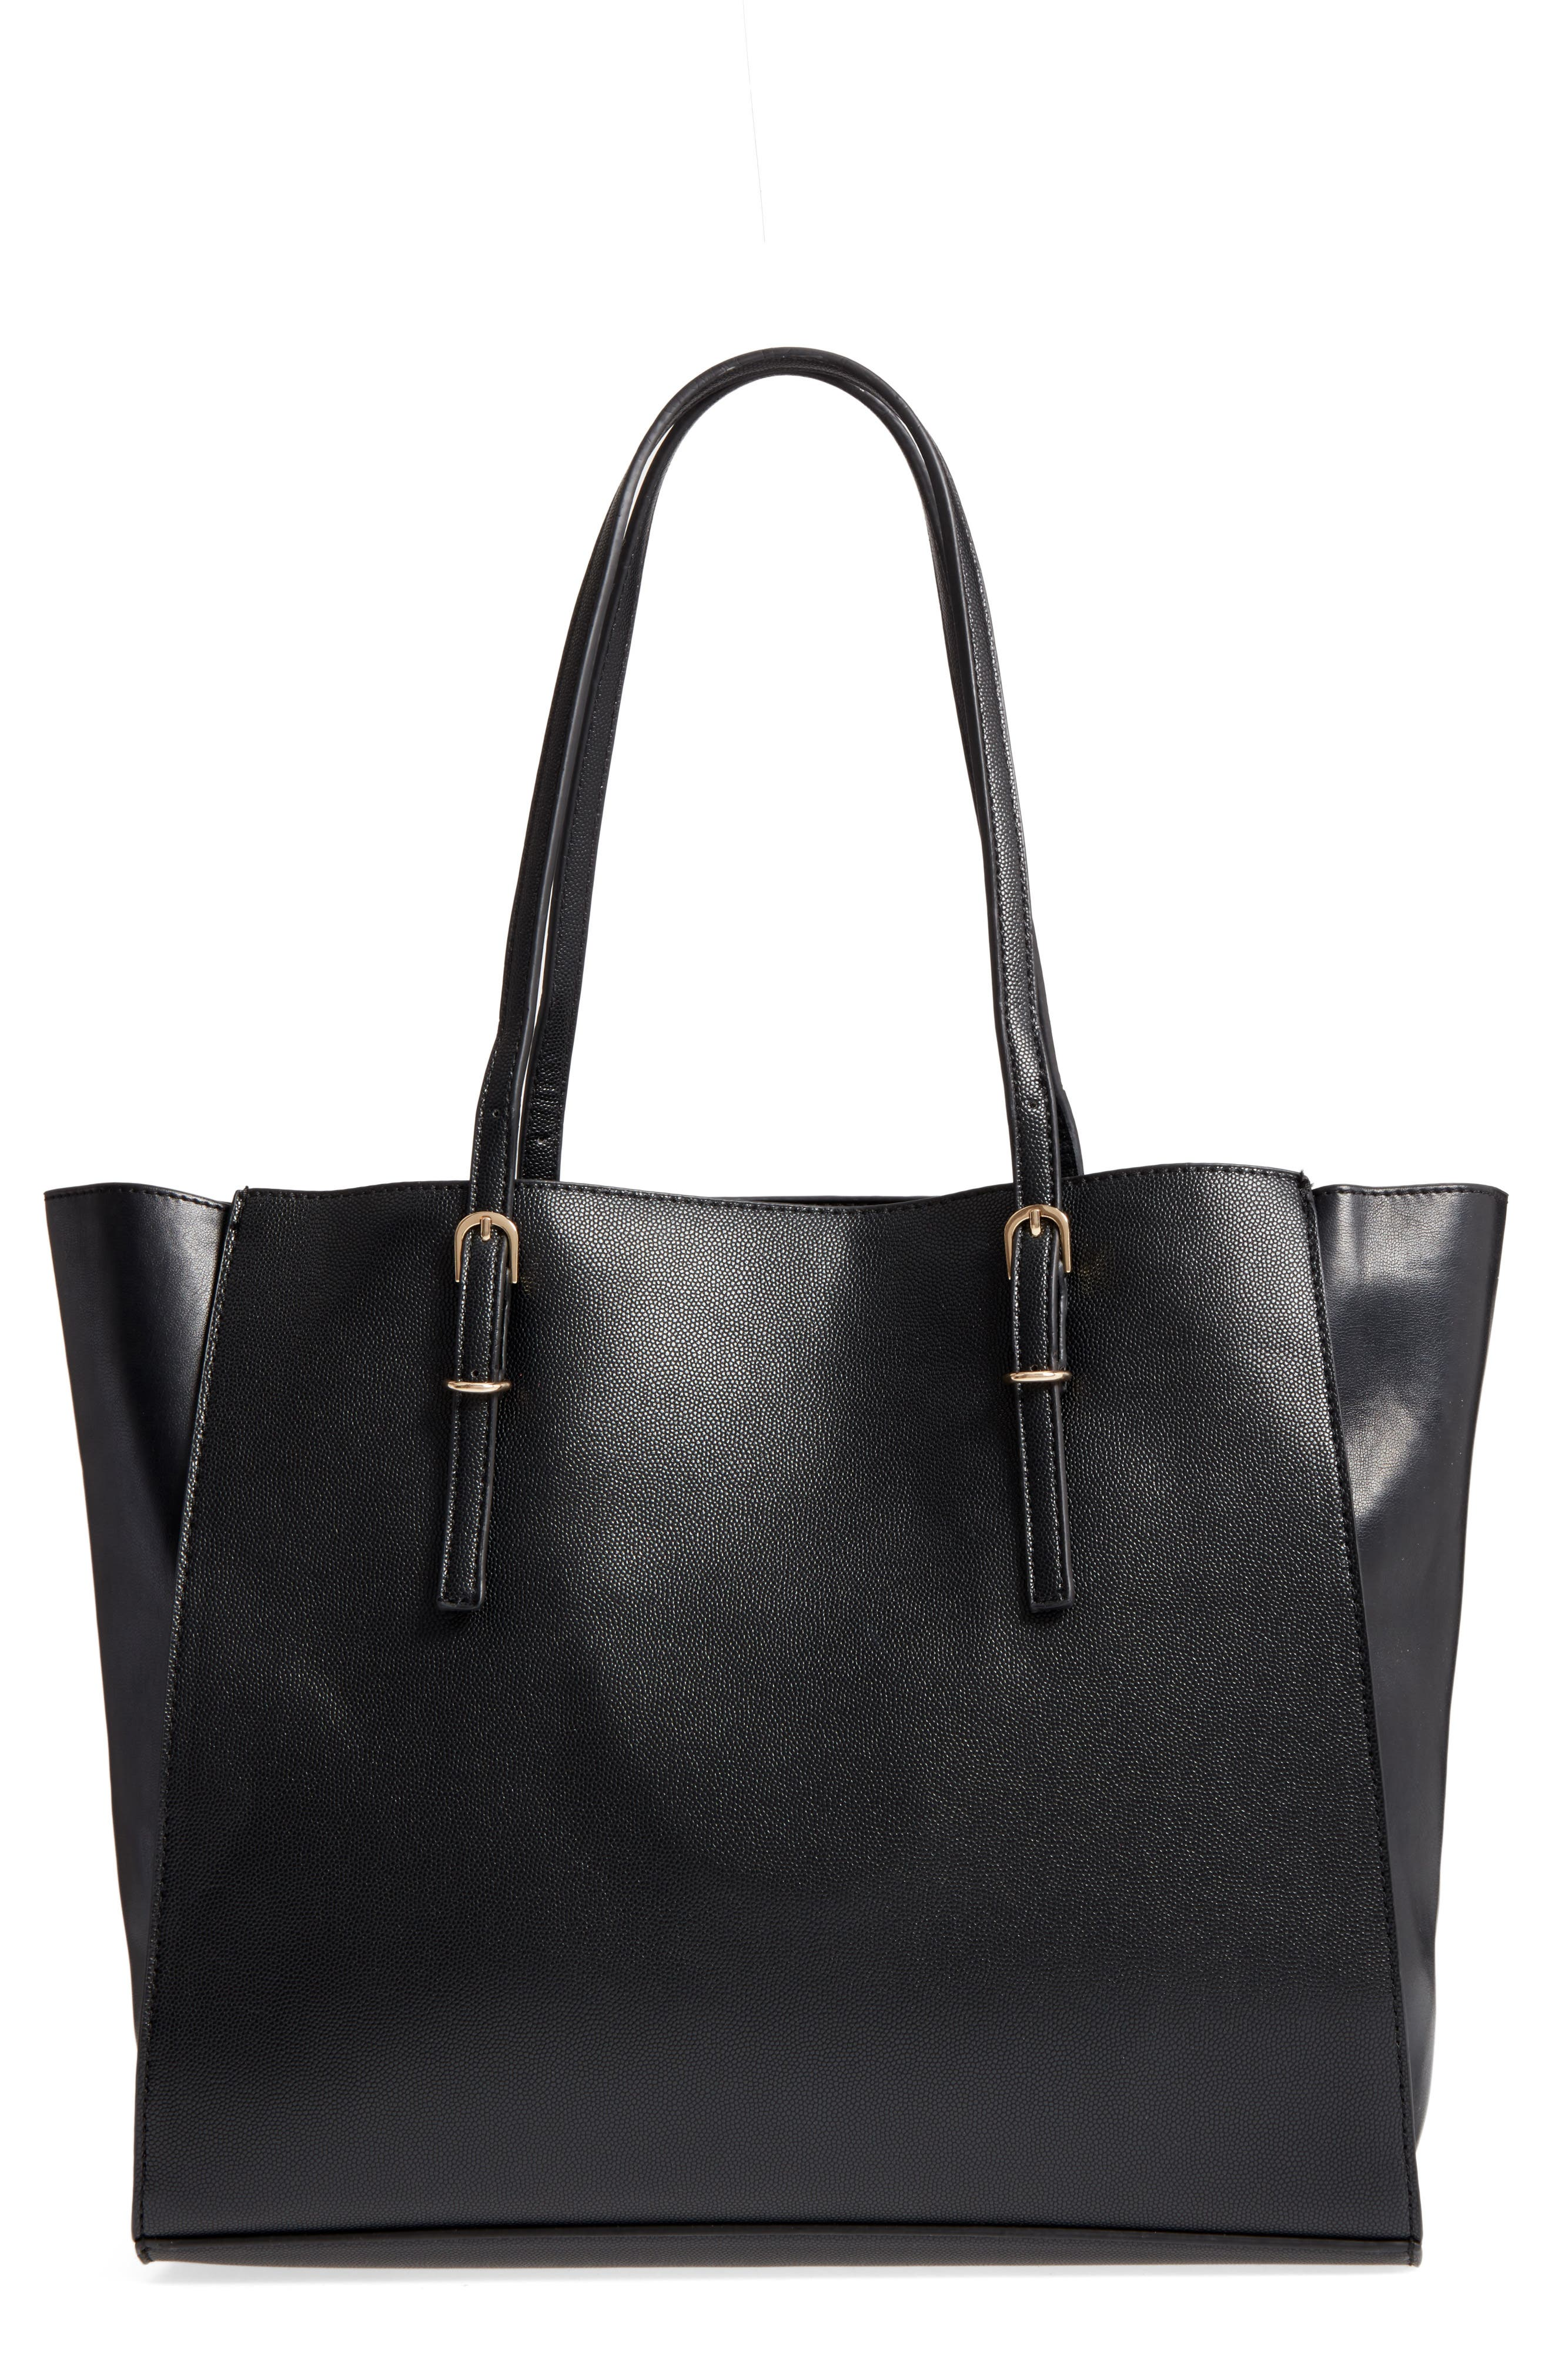 Alternate Image 1 Selected - Street Level Faux Leather Buckle Tote